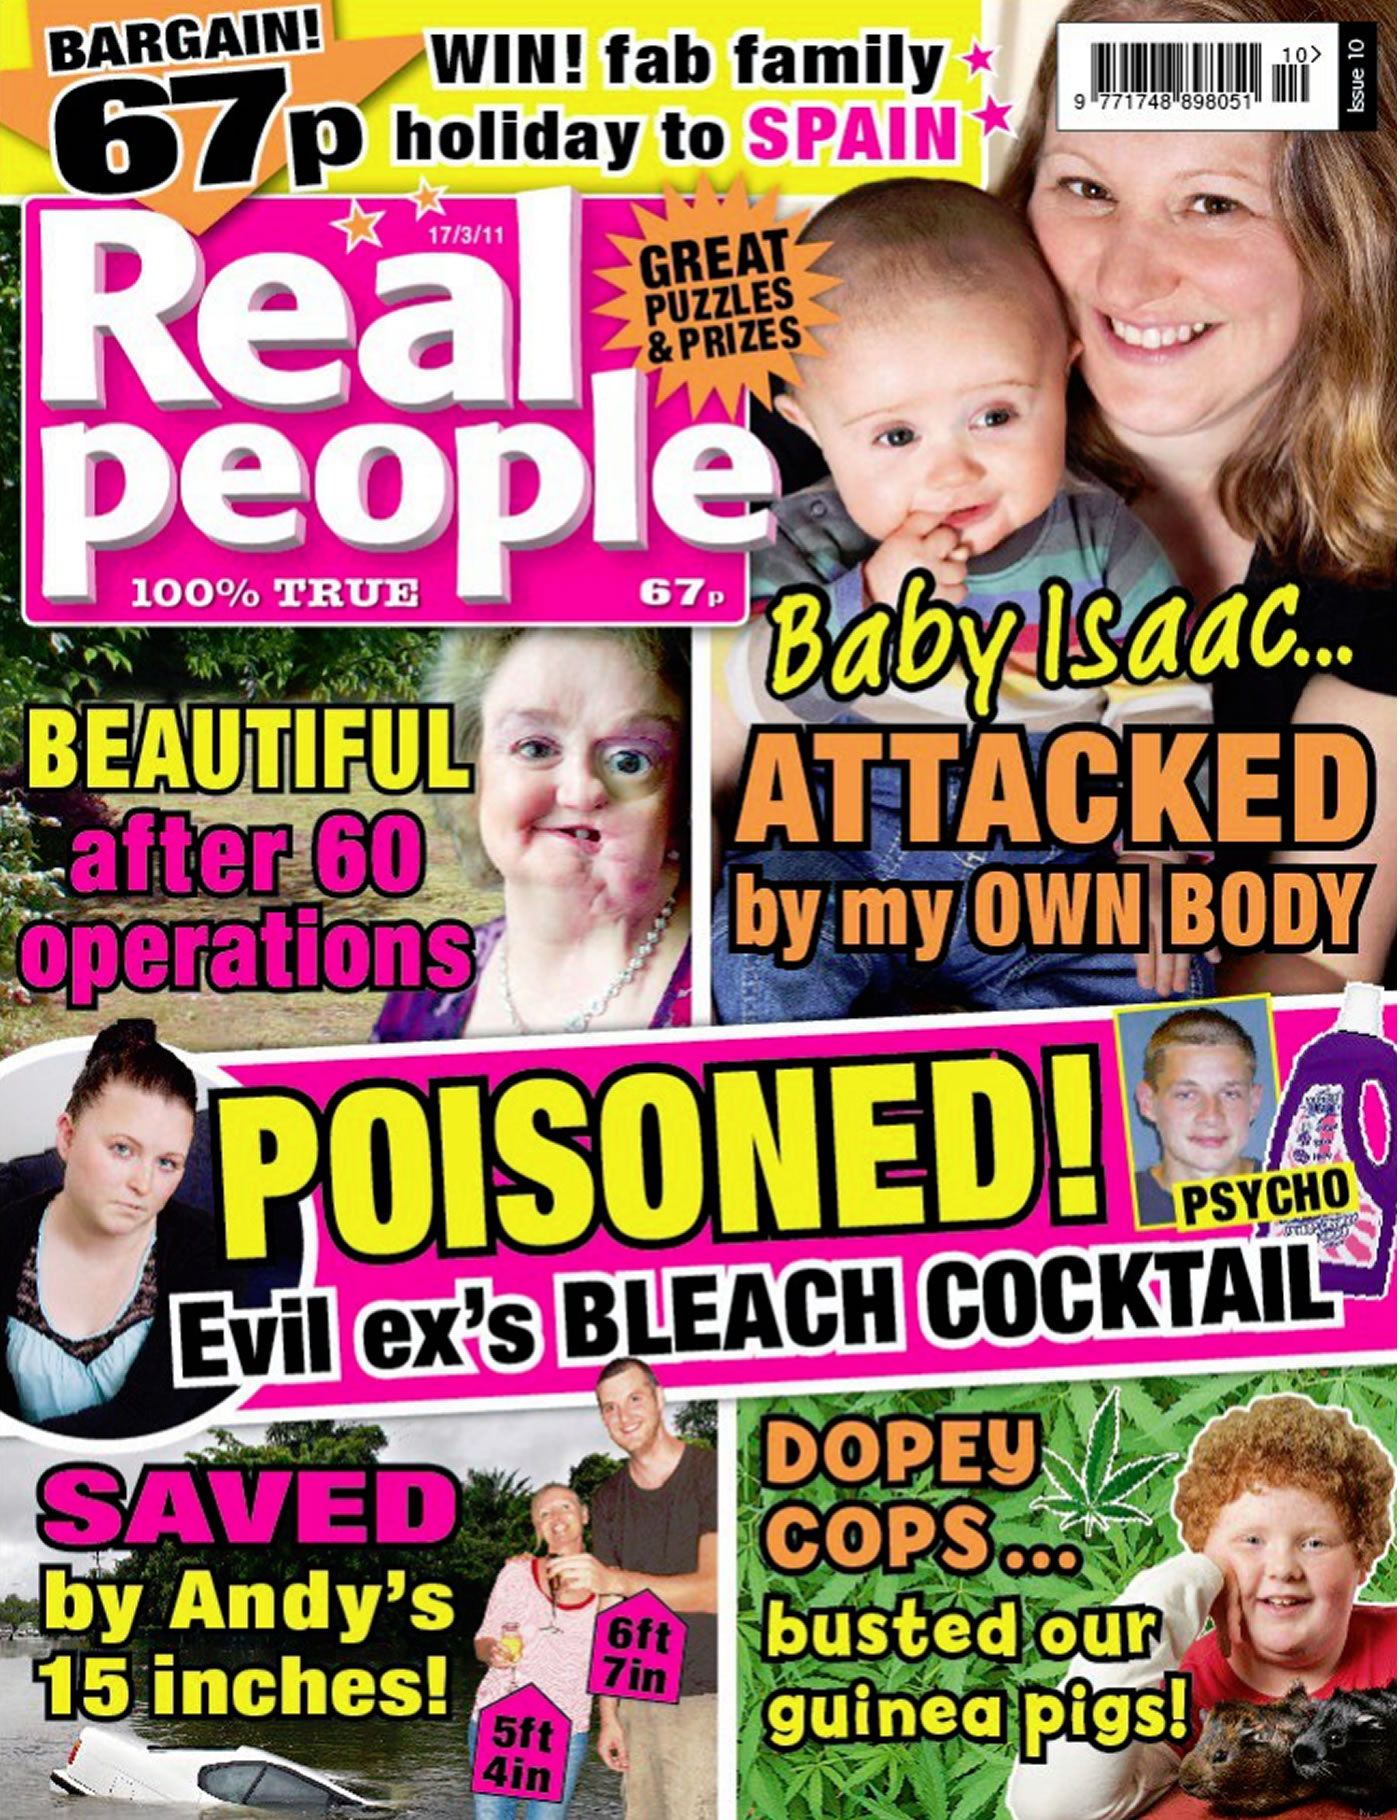 'Heady Horror' - Real Hair Extension Damage Saved by Mark Glenn - Real People Magazine